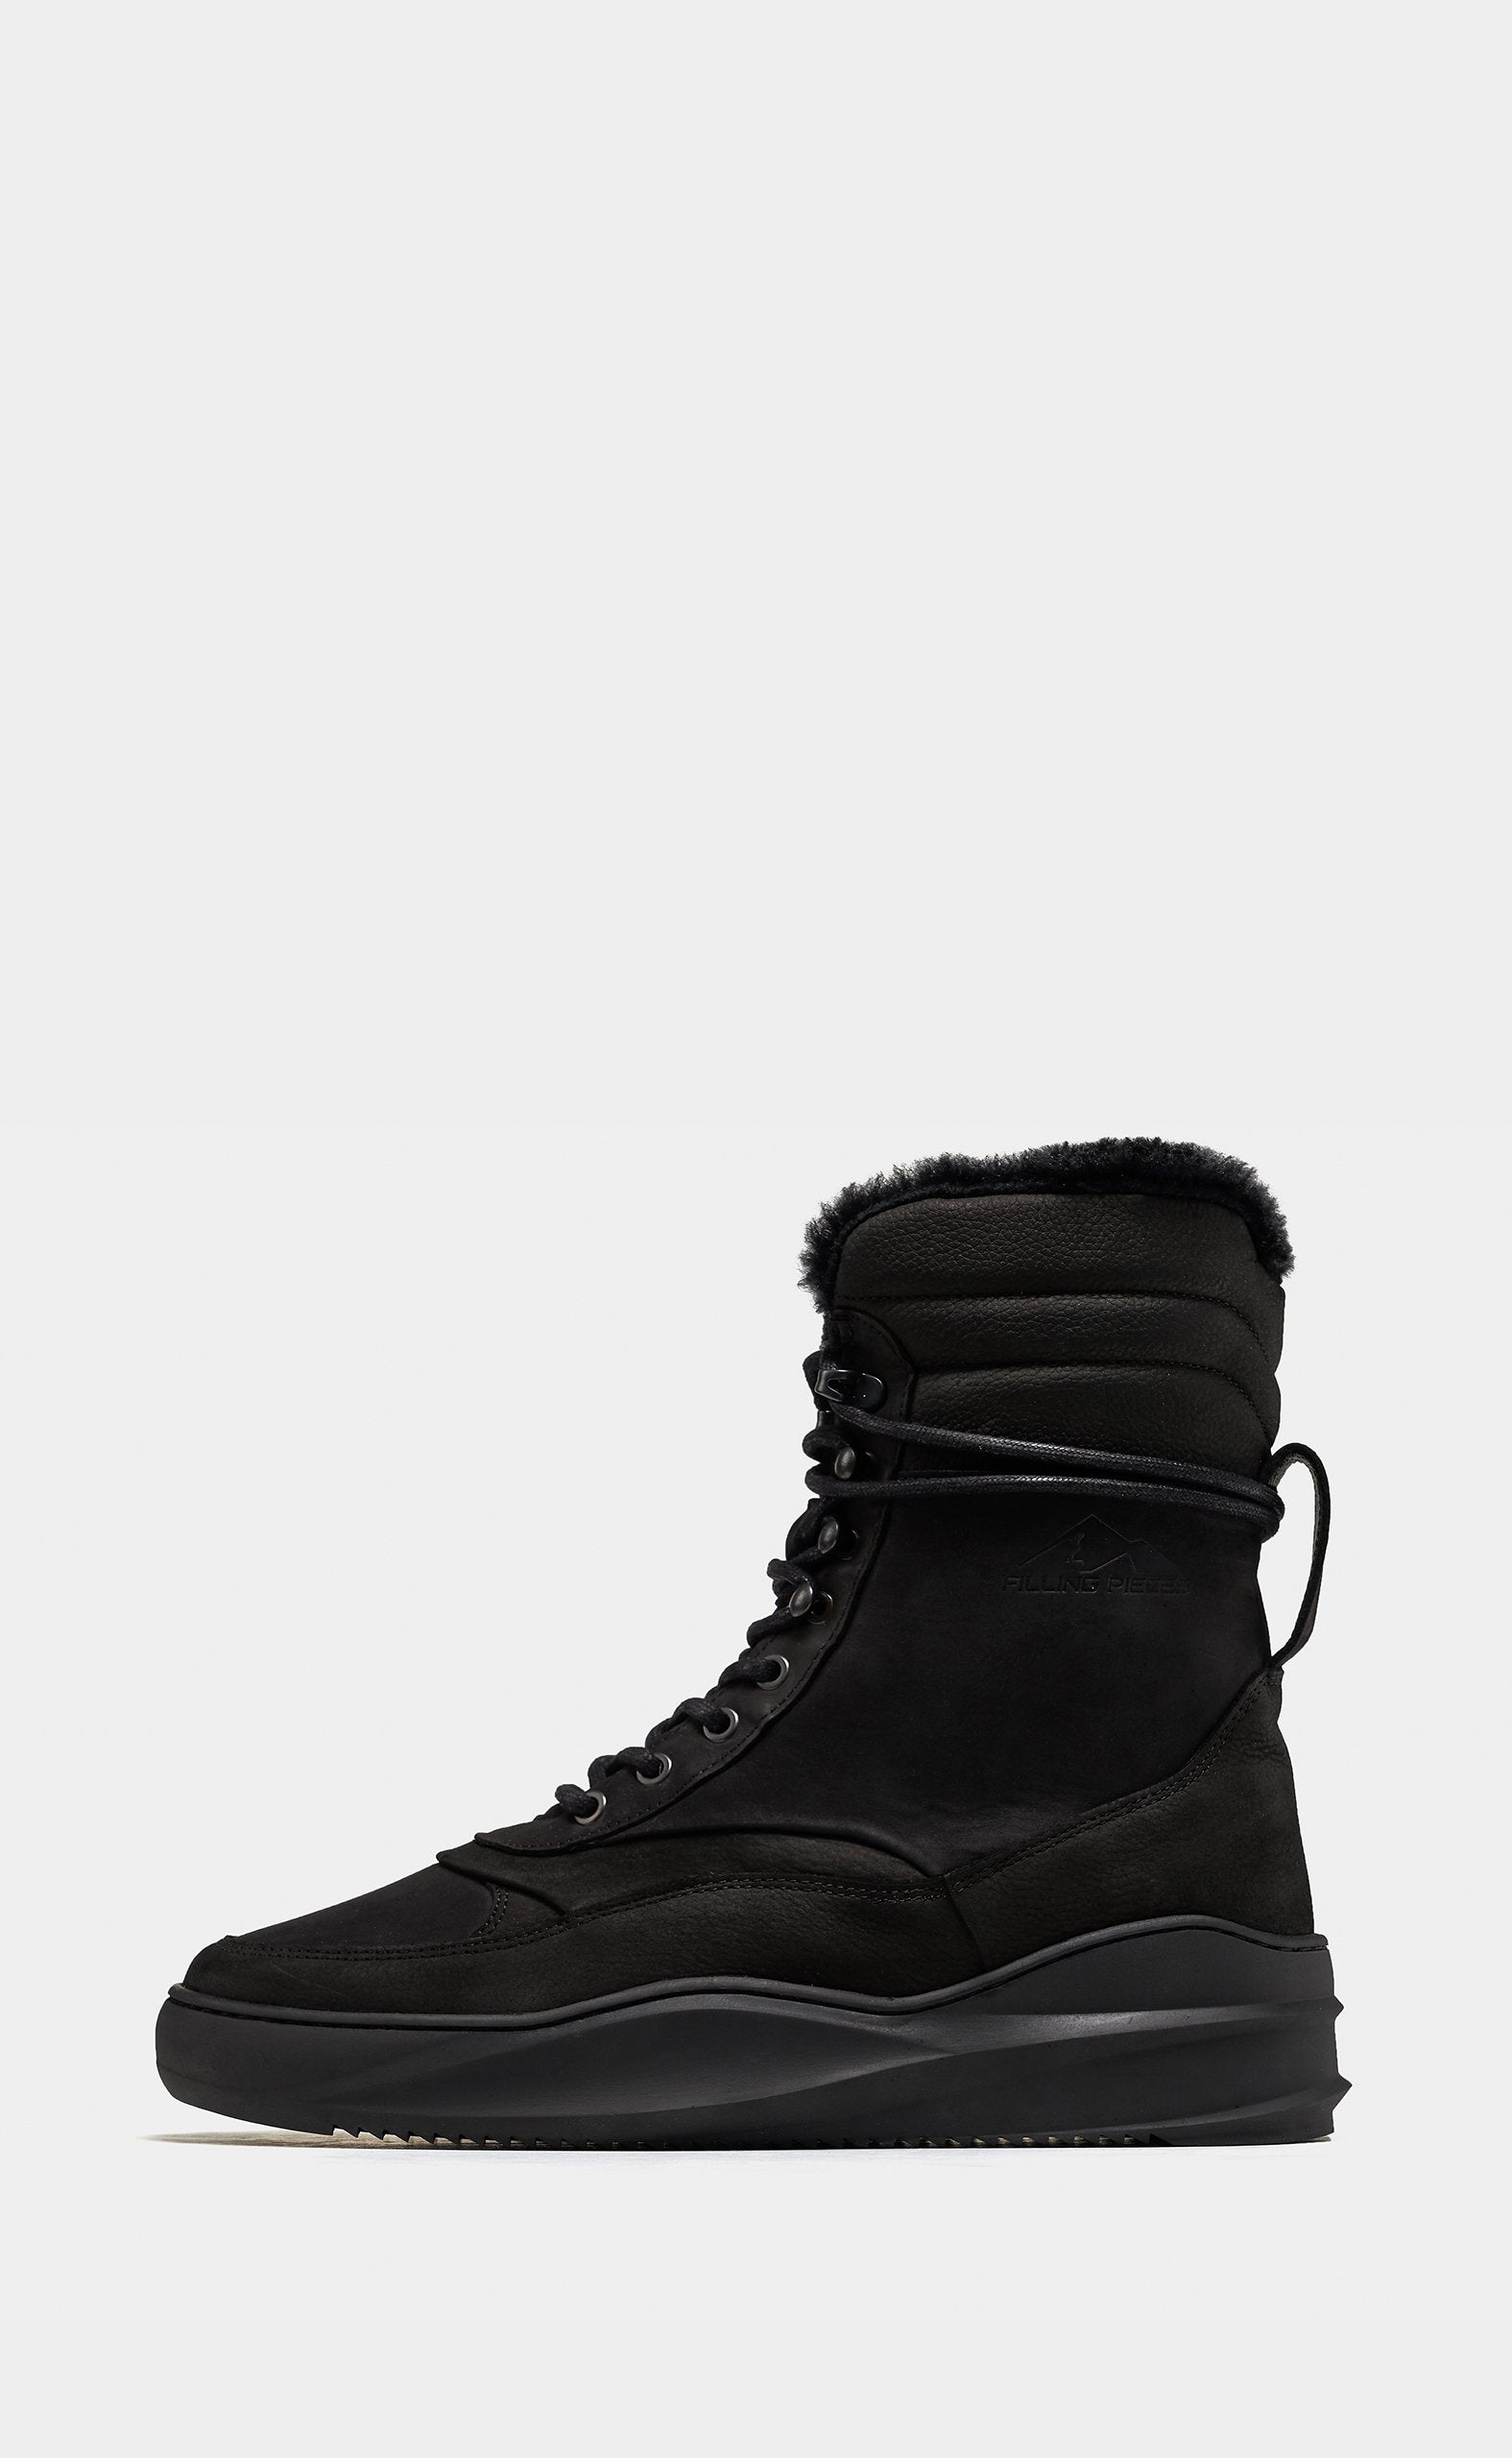 High Field Boot Sky Tsaatan 2.0 Black